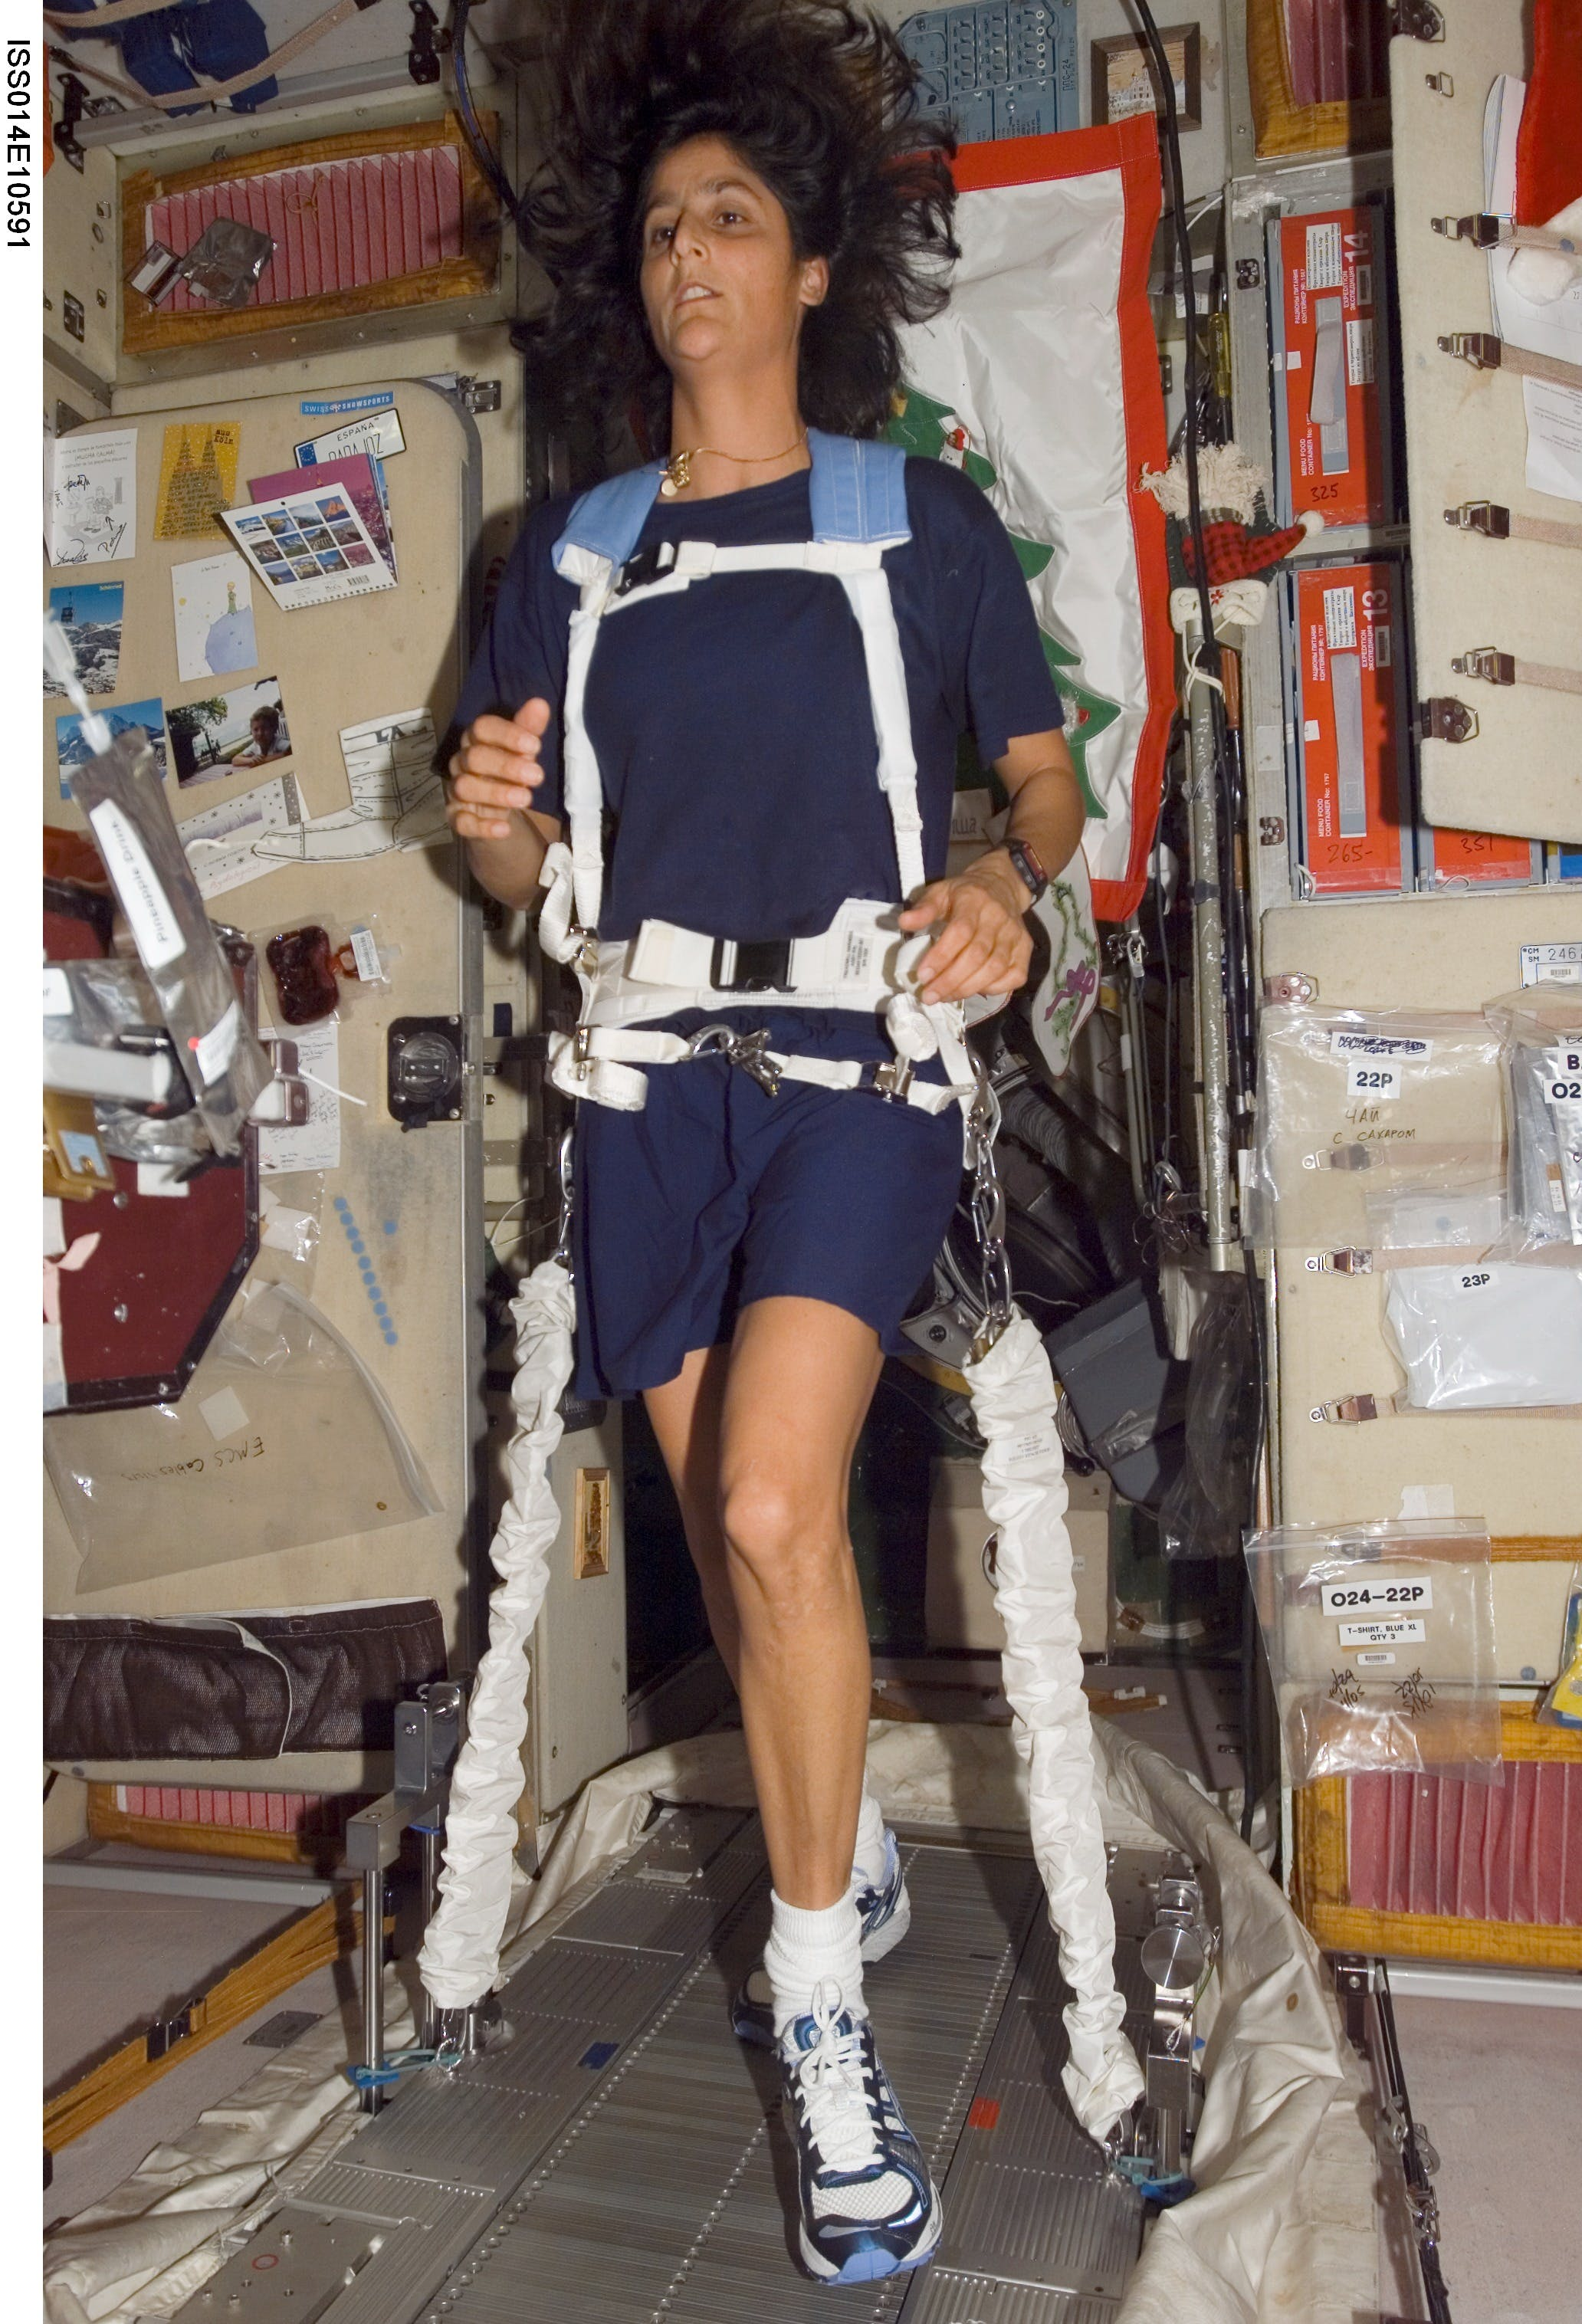 An astronaut exercising in space